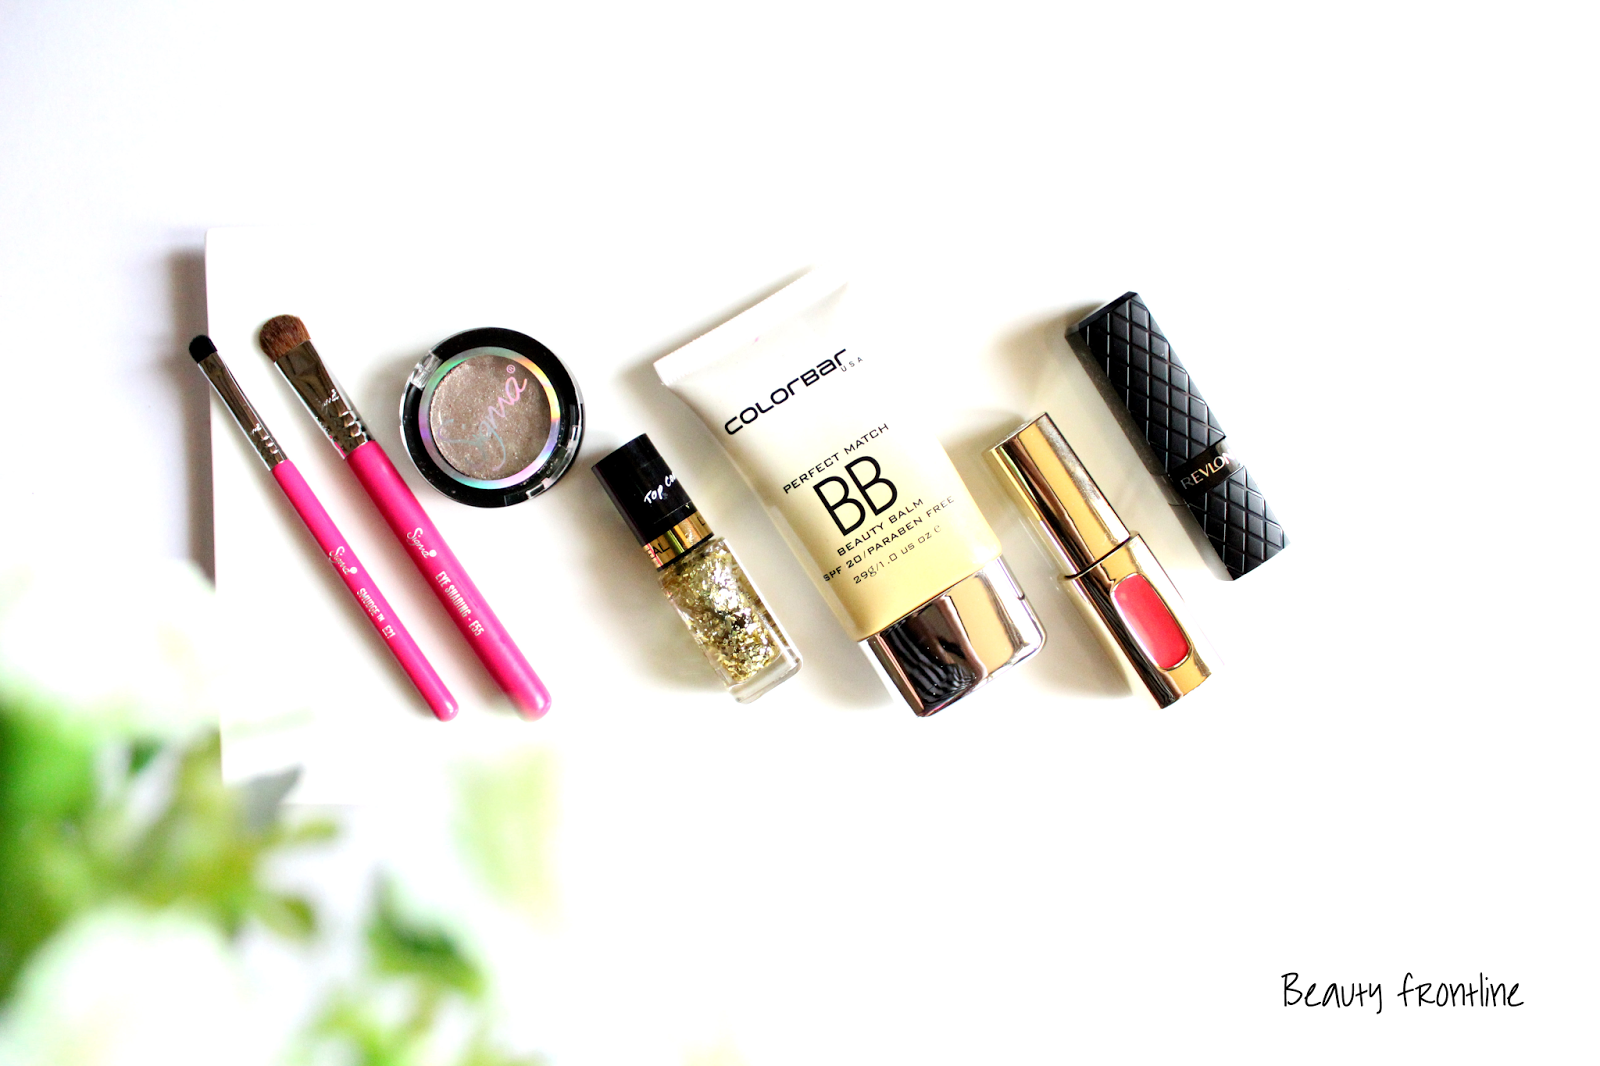 May 2015 beauty Favorites, colorbar, loreal, revlon, sigma beauty, eye makeup brushes, lipstick, lip gloss, beauty balm, nails top coat